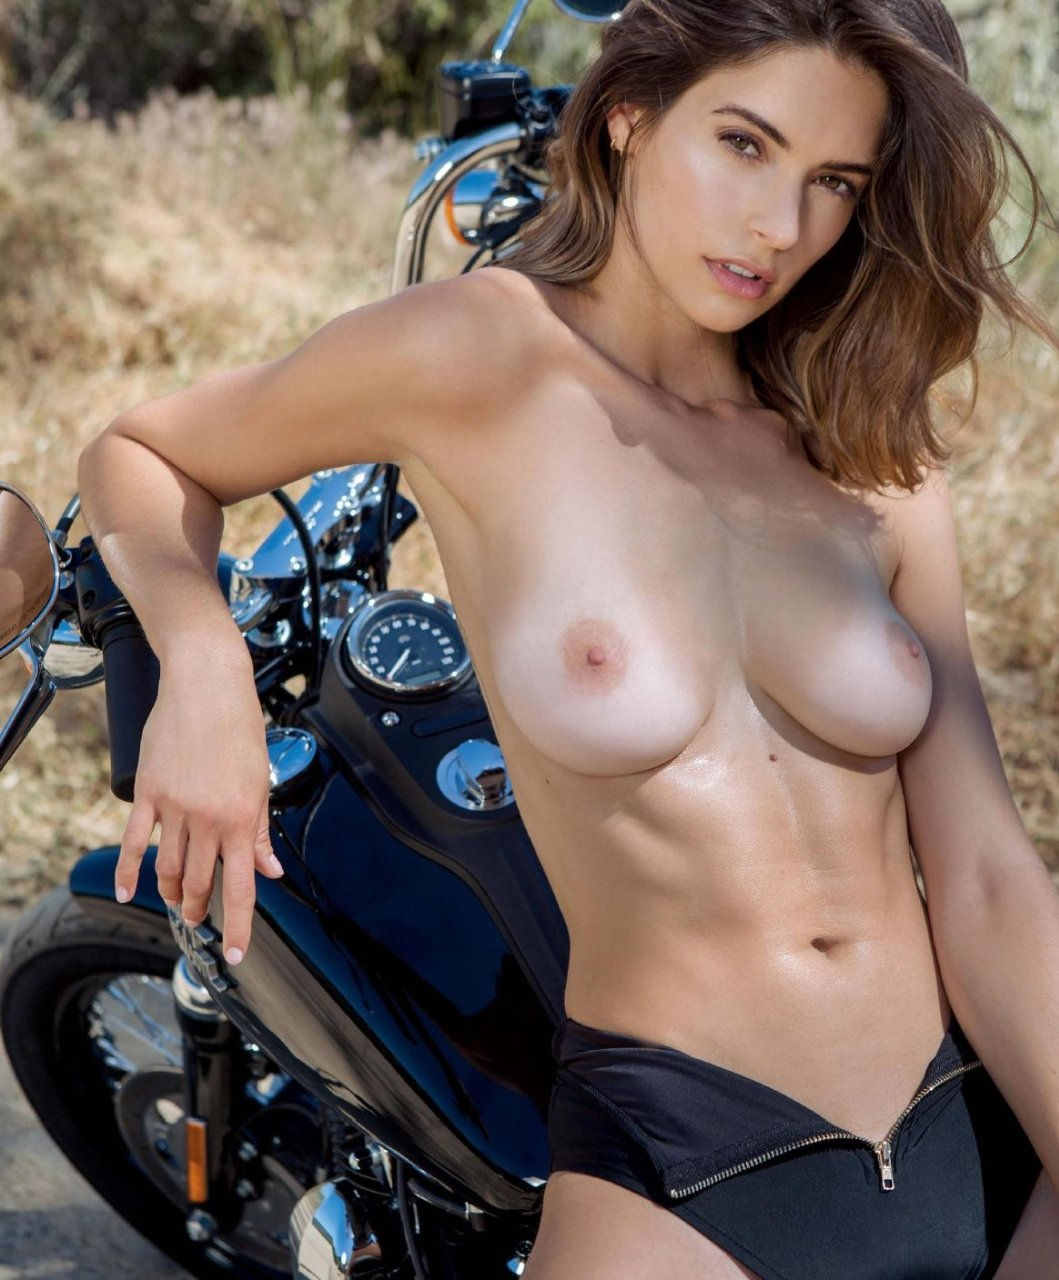 Cassi thomson topless nude (18 pictures)